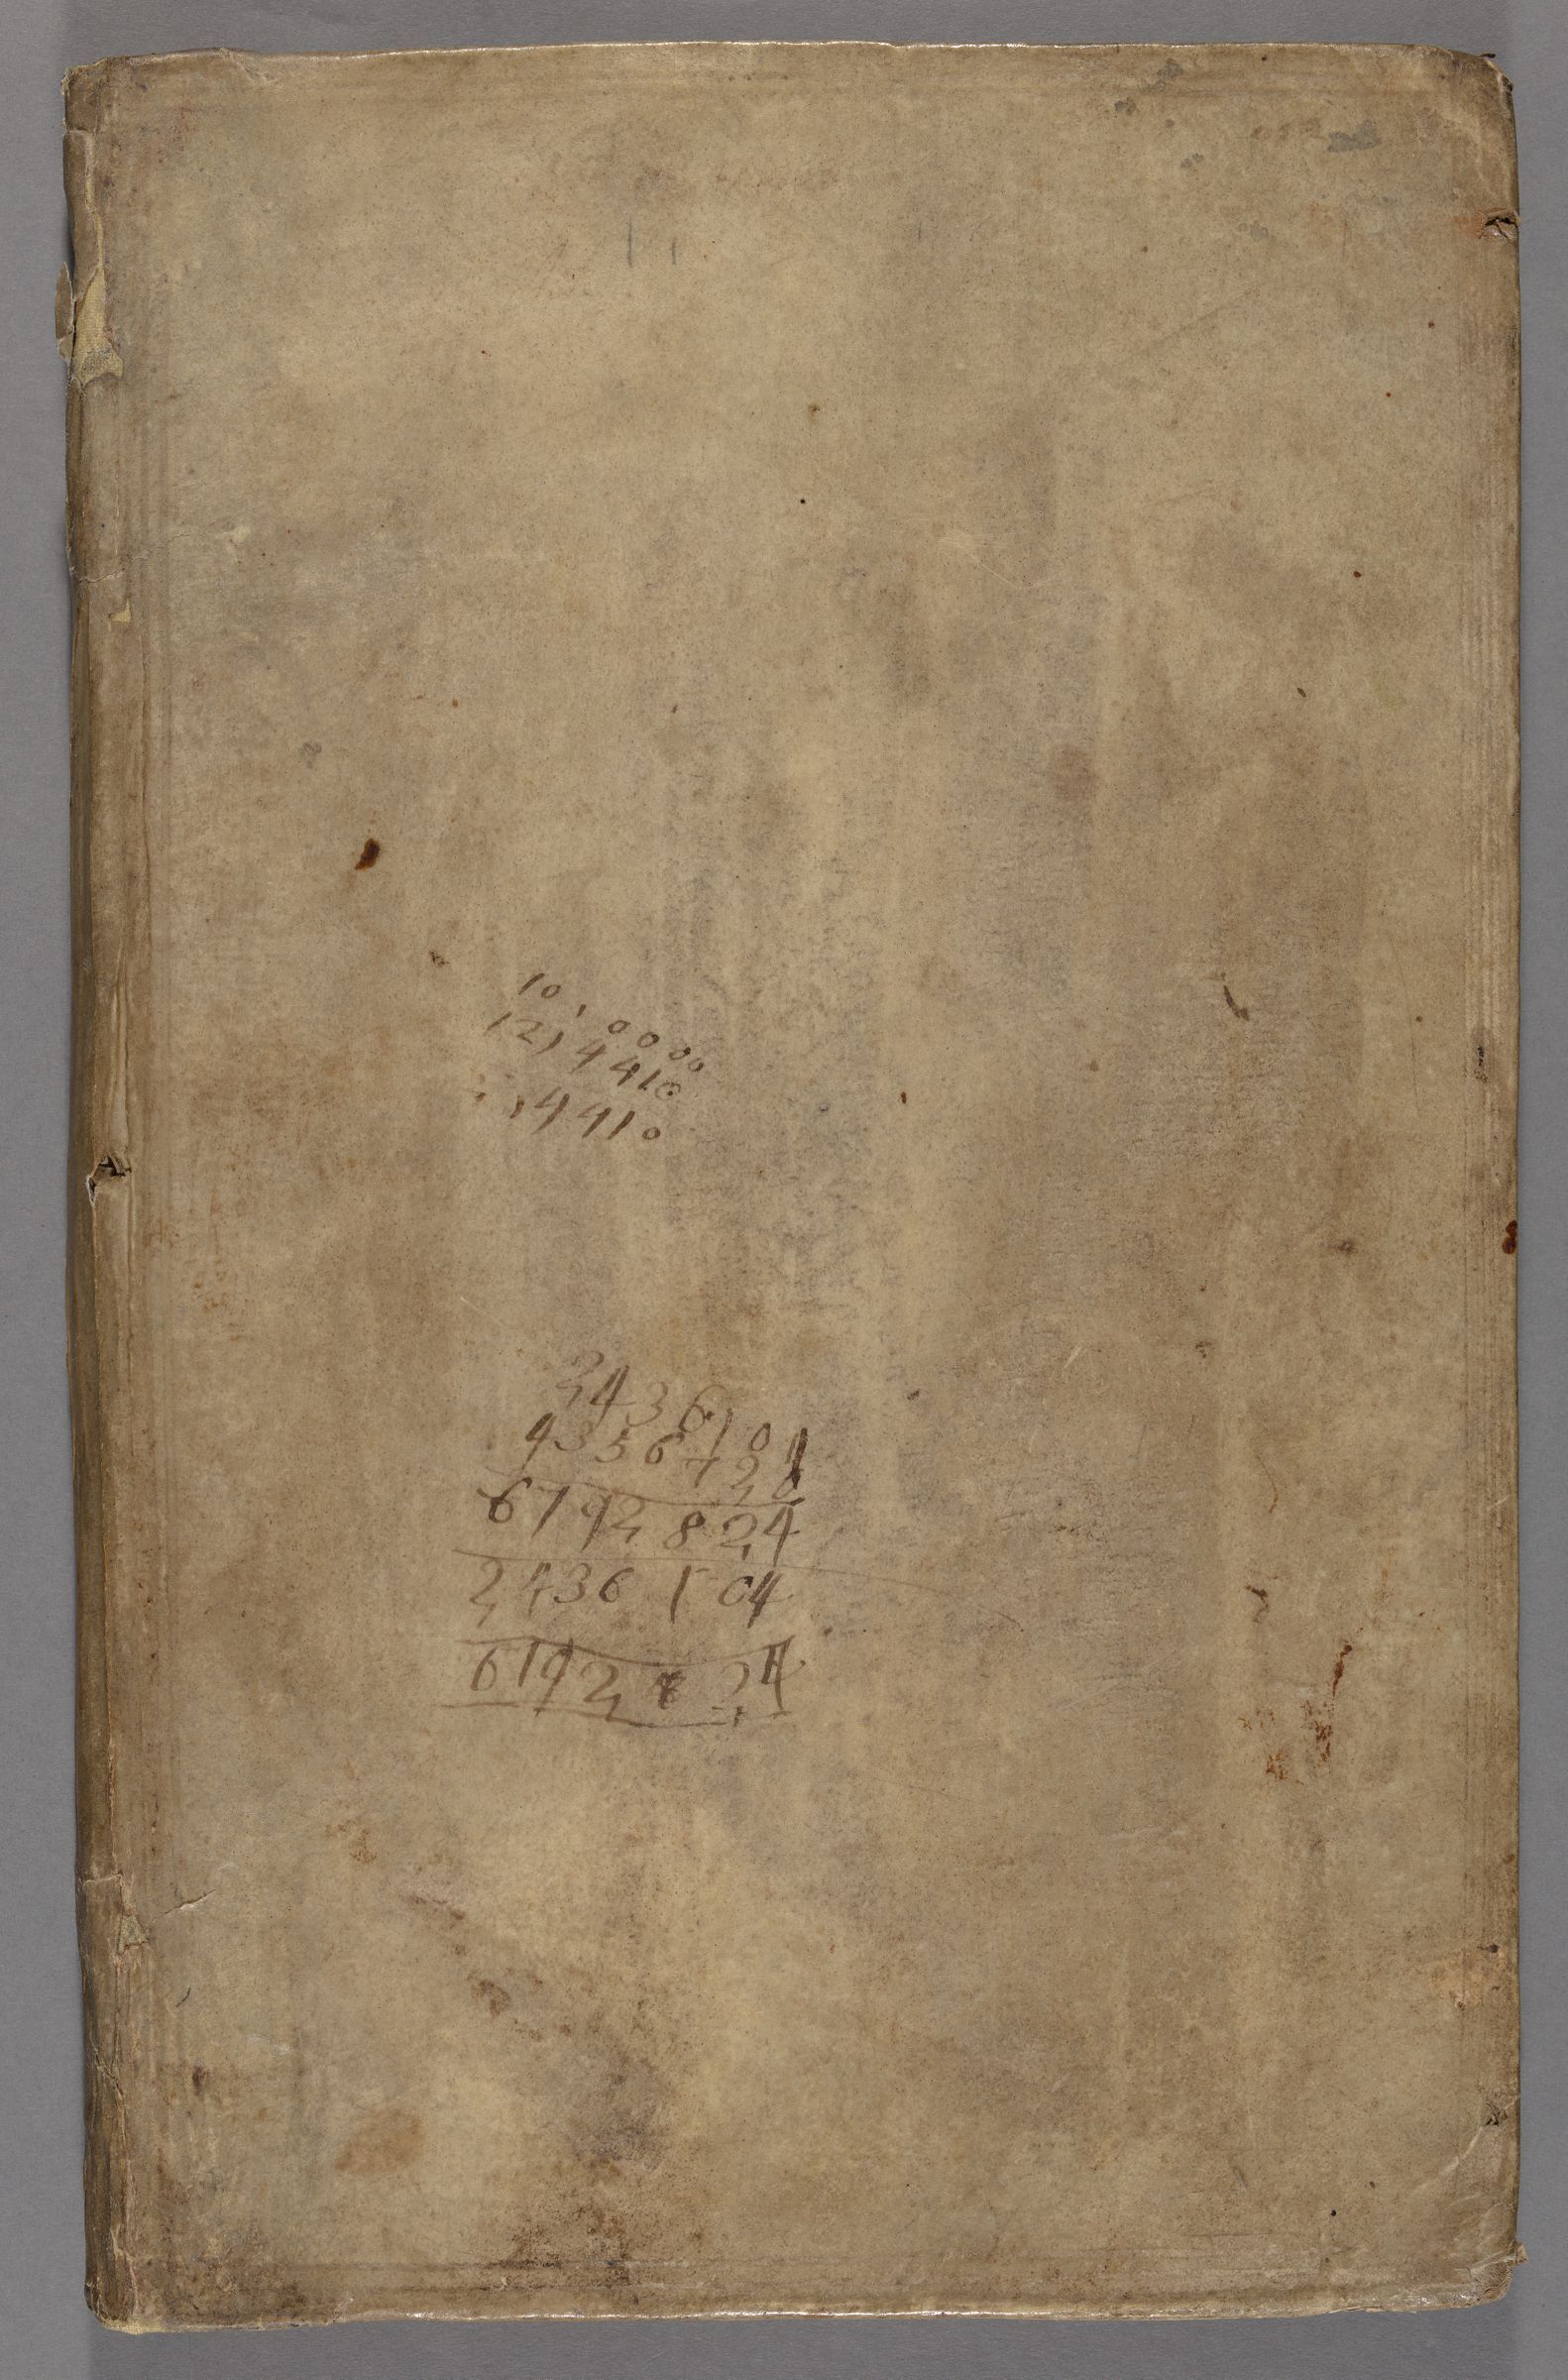 Manual of navigation : manuscript, [1697?]